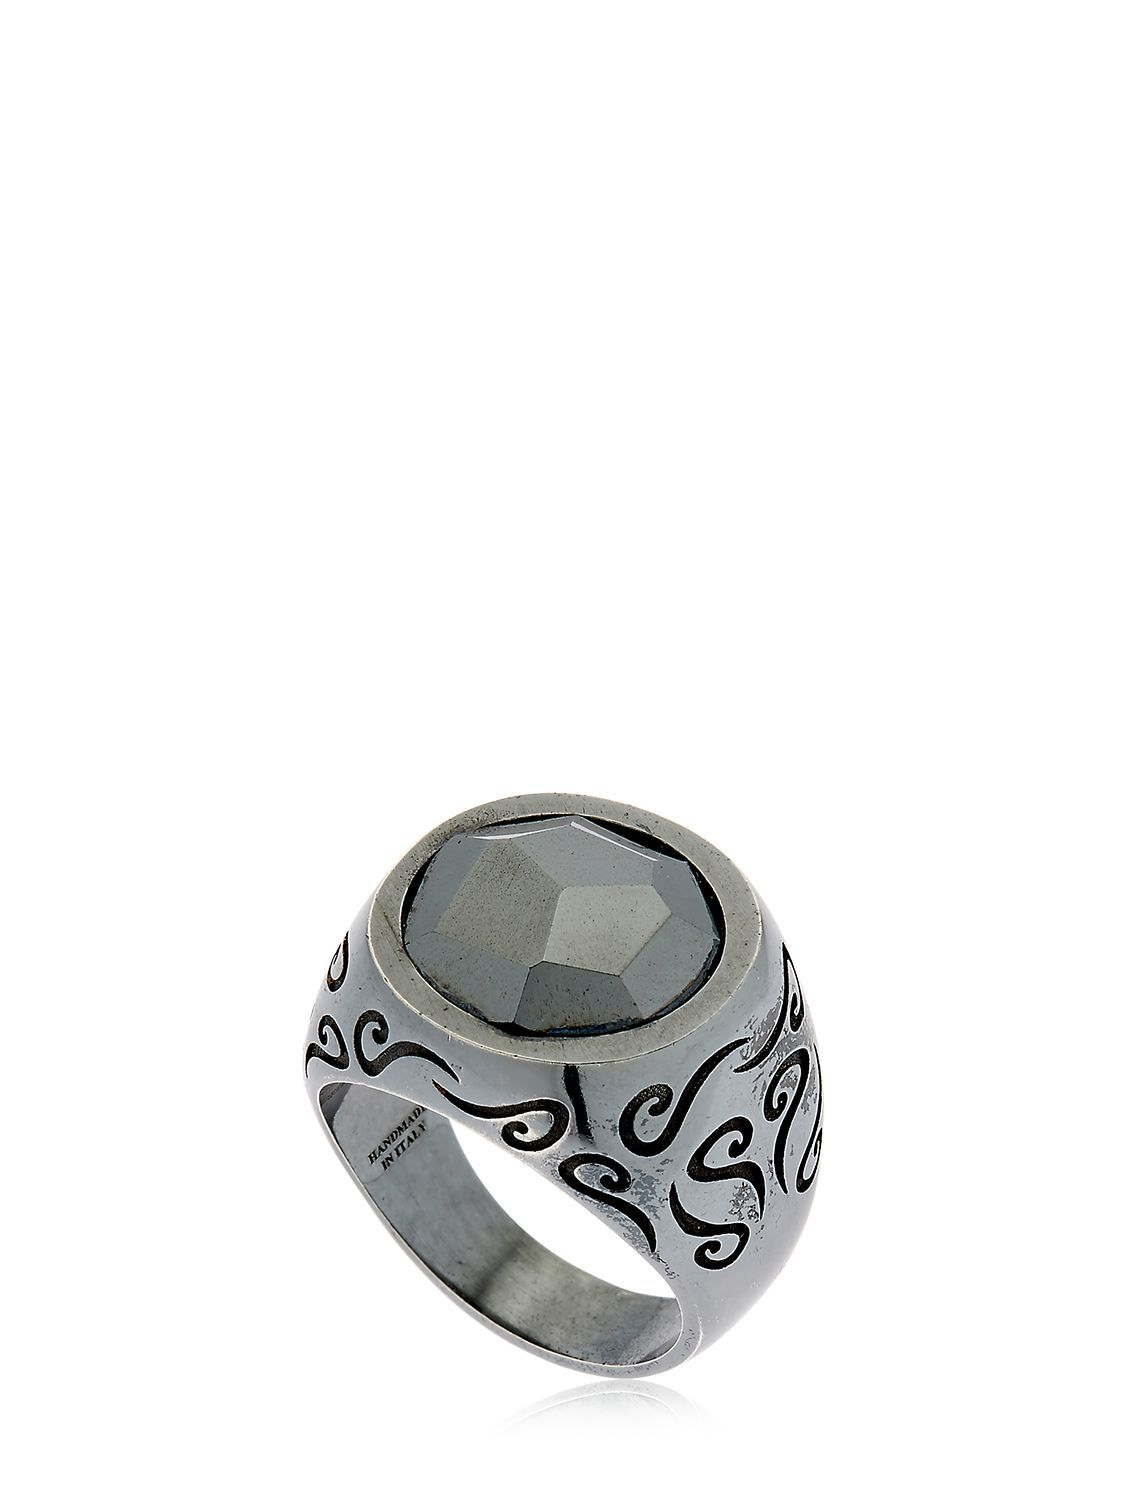 Marco Dal Maso Mens Silver Band Ring with Red Sapphire, Size 10